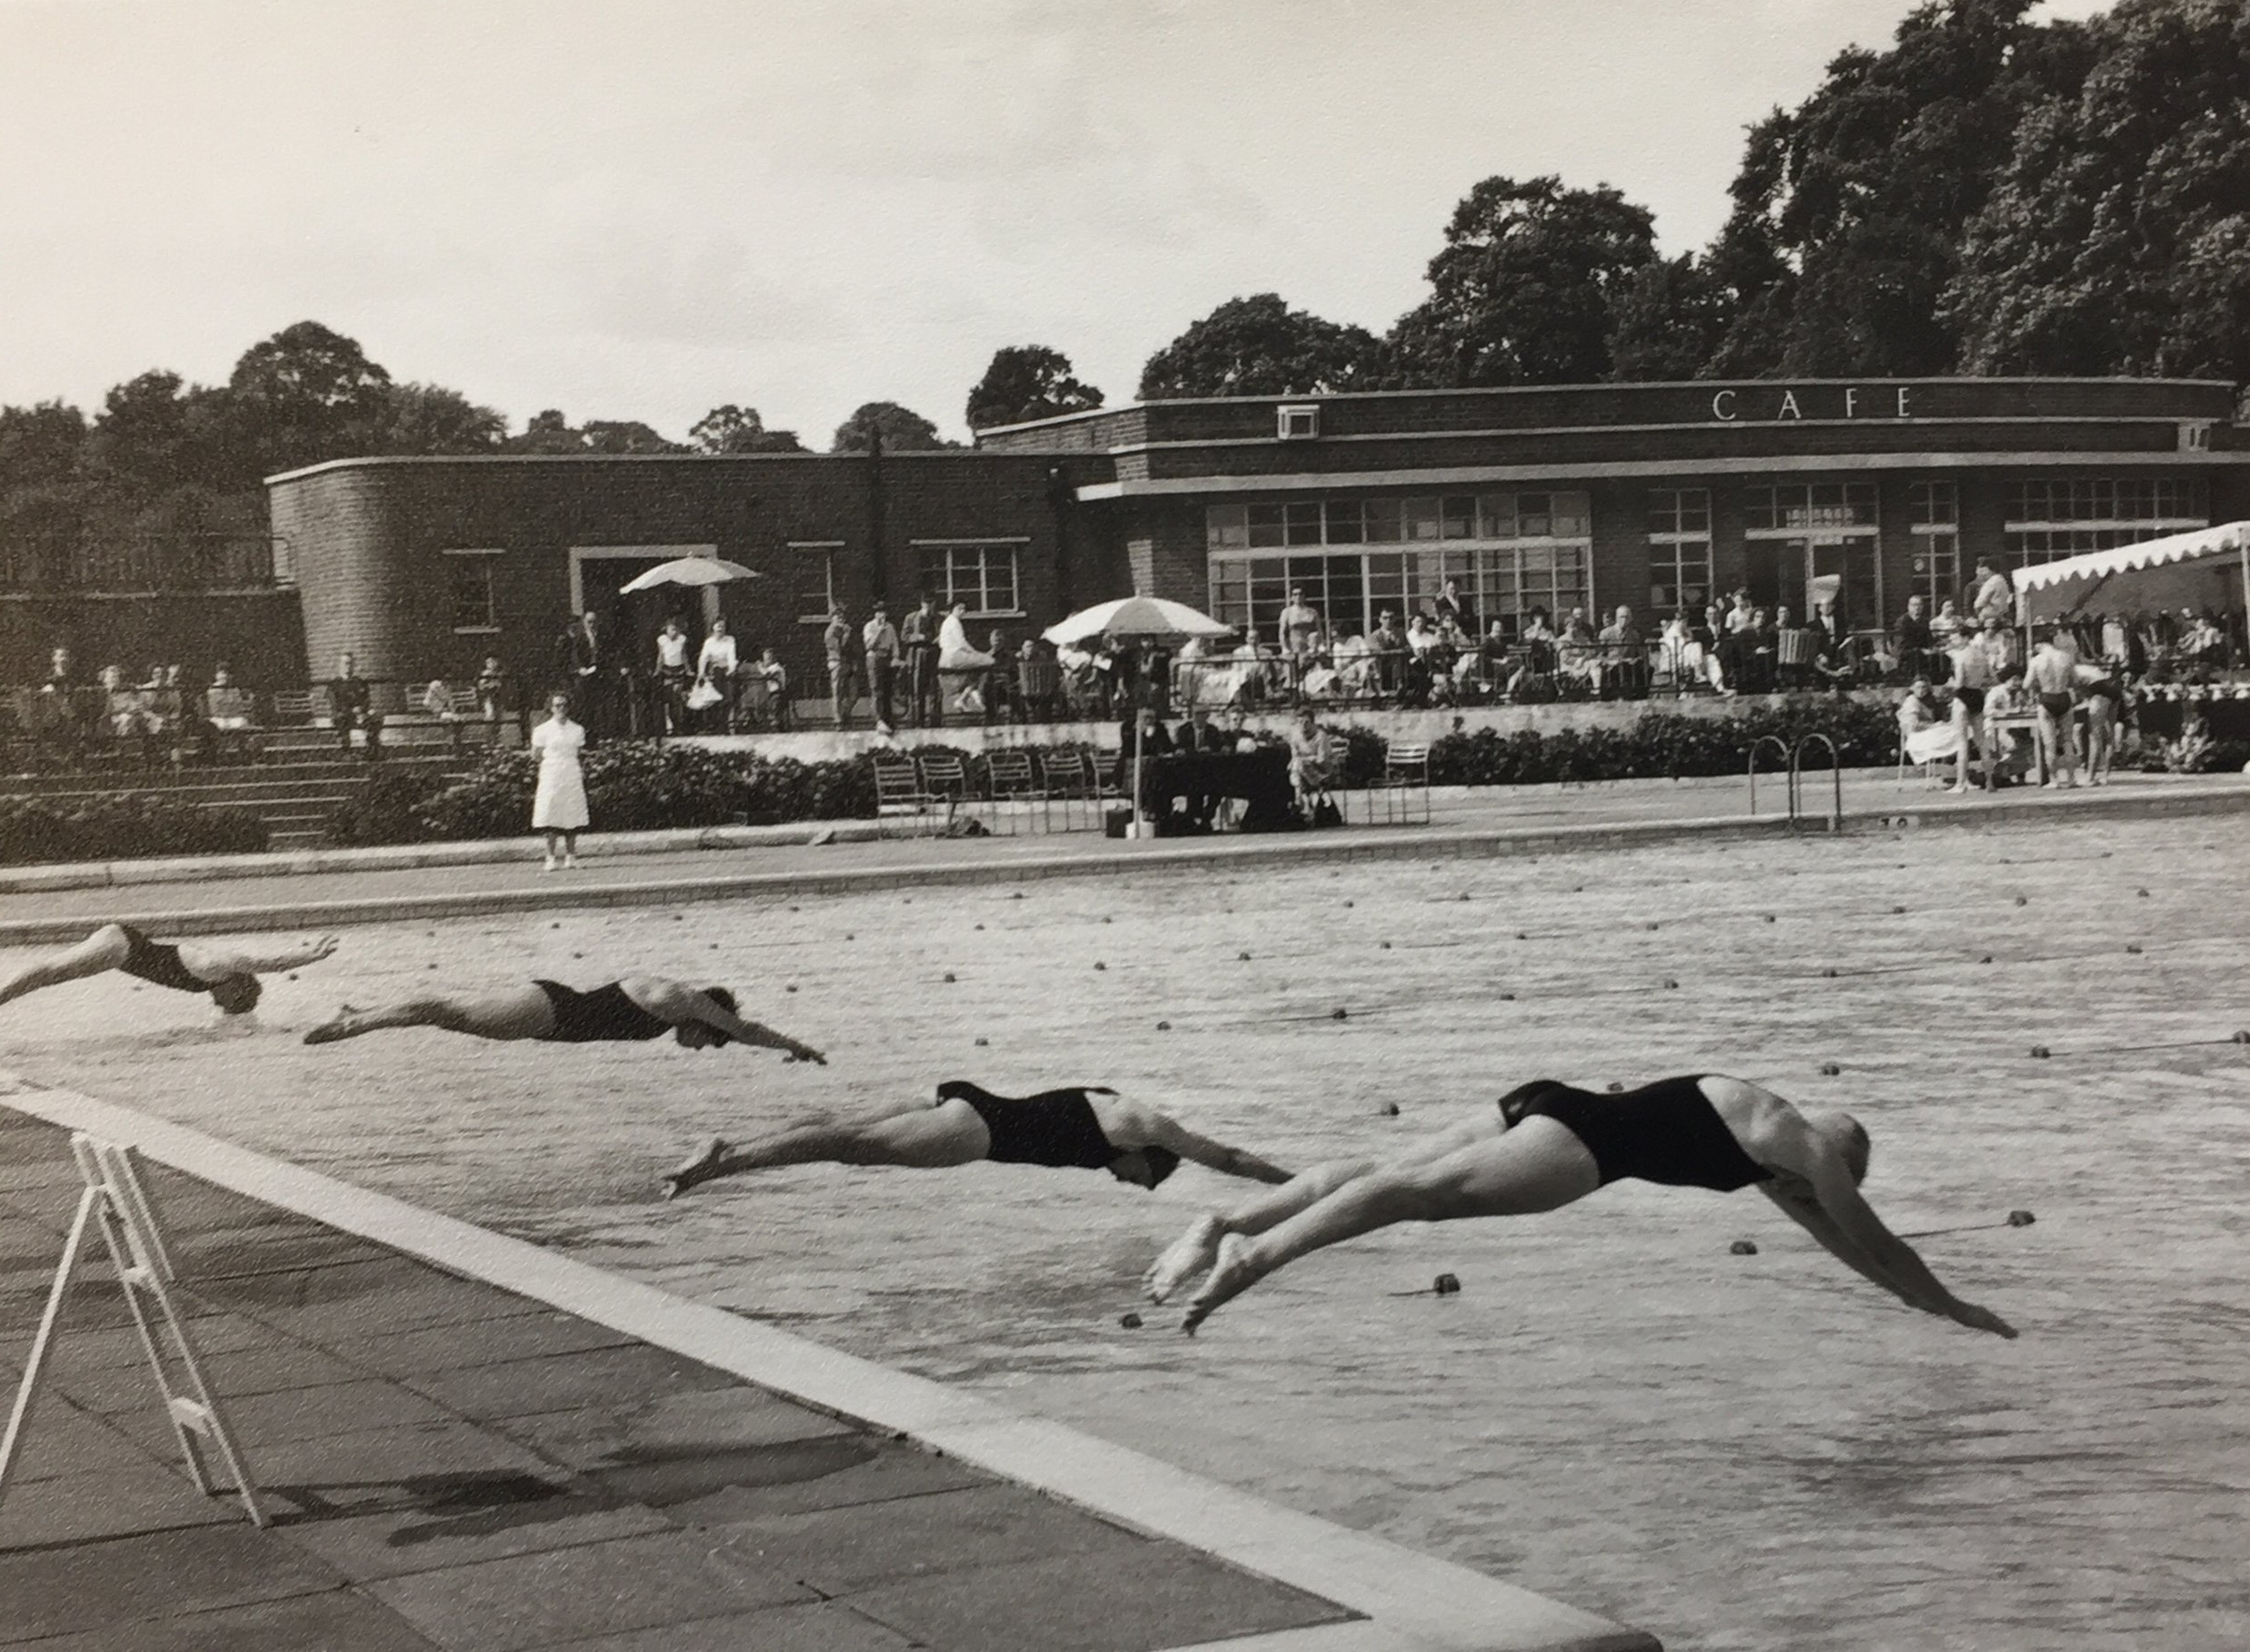 A swimming race at the London Swimming Championships